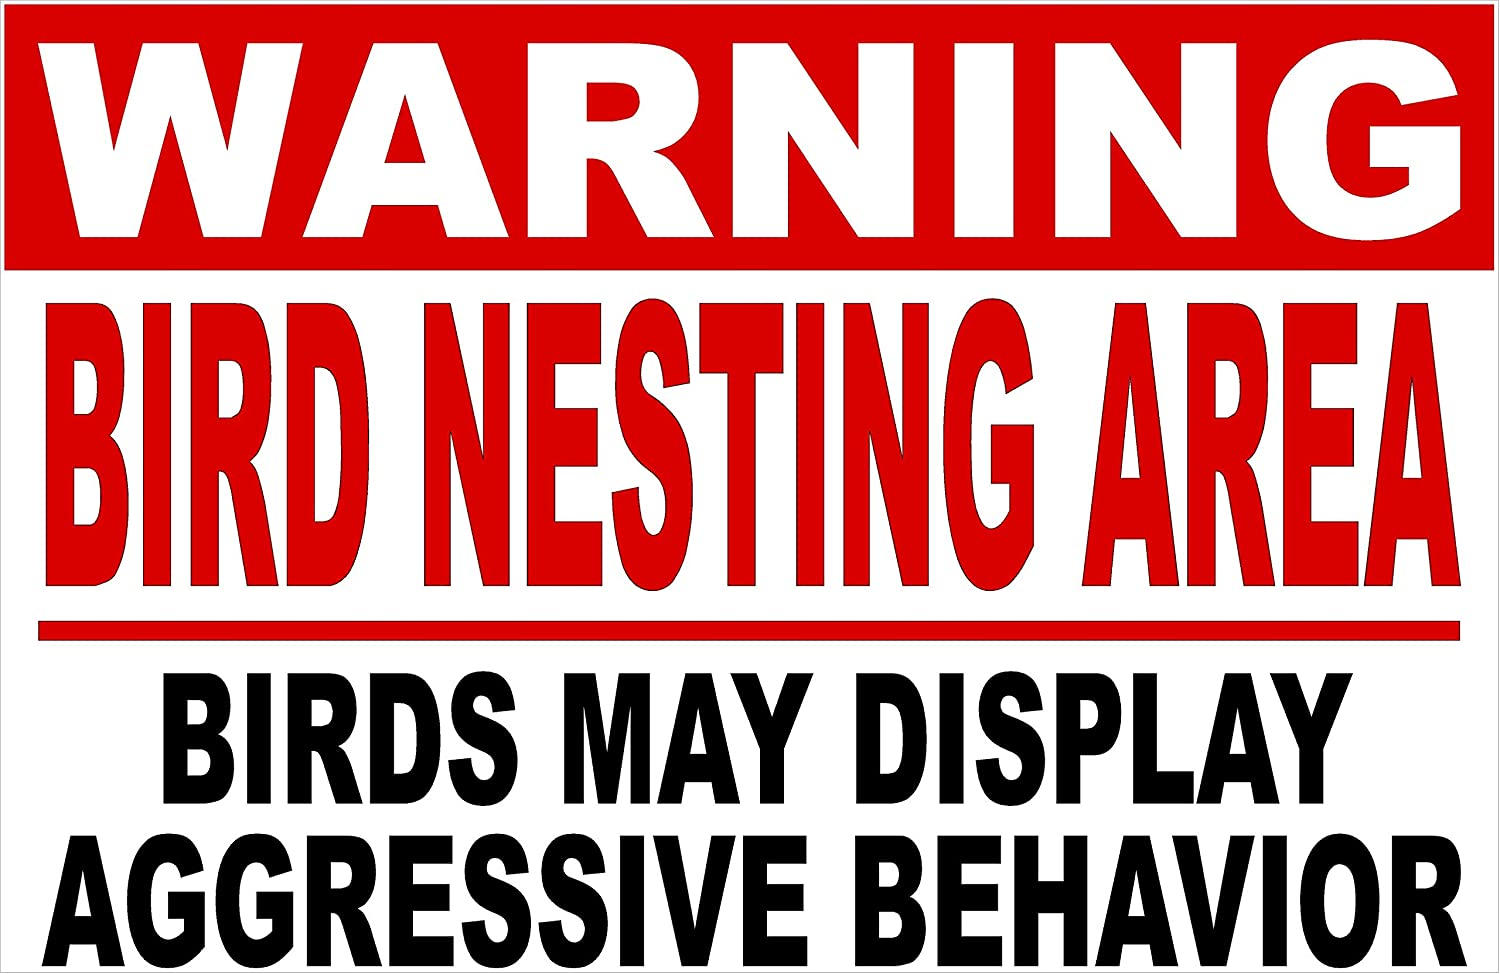 Warning Bird Nesting Area Birds Aggressive Show Behavior Excellent Sig May Safety and trust